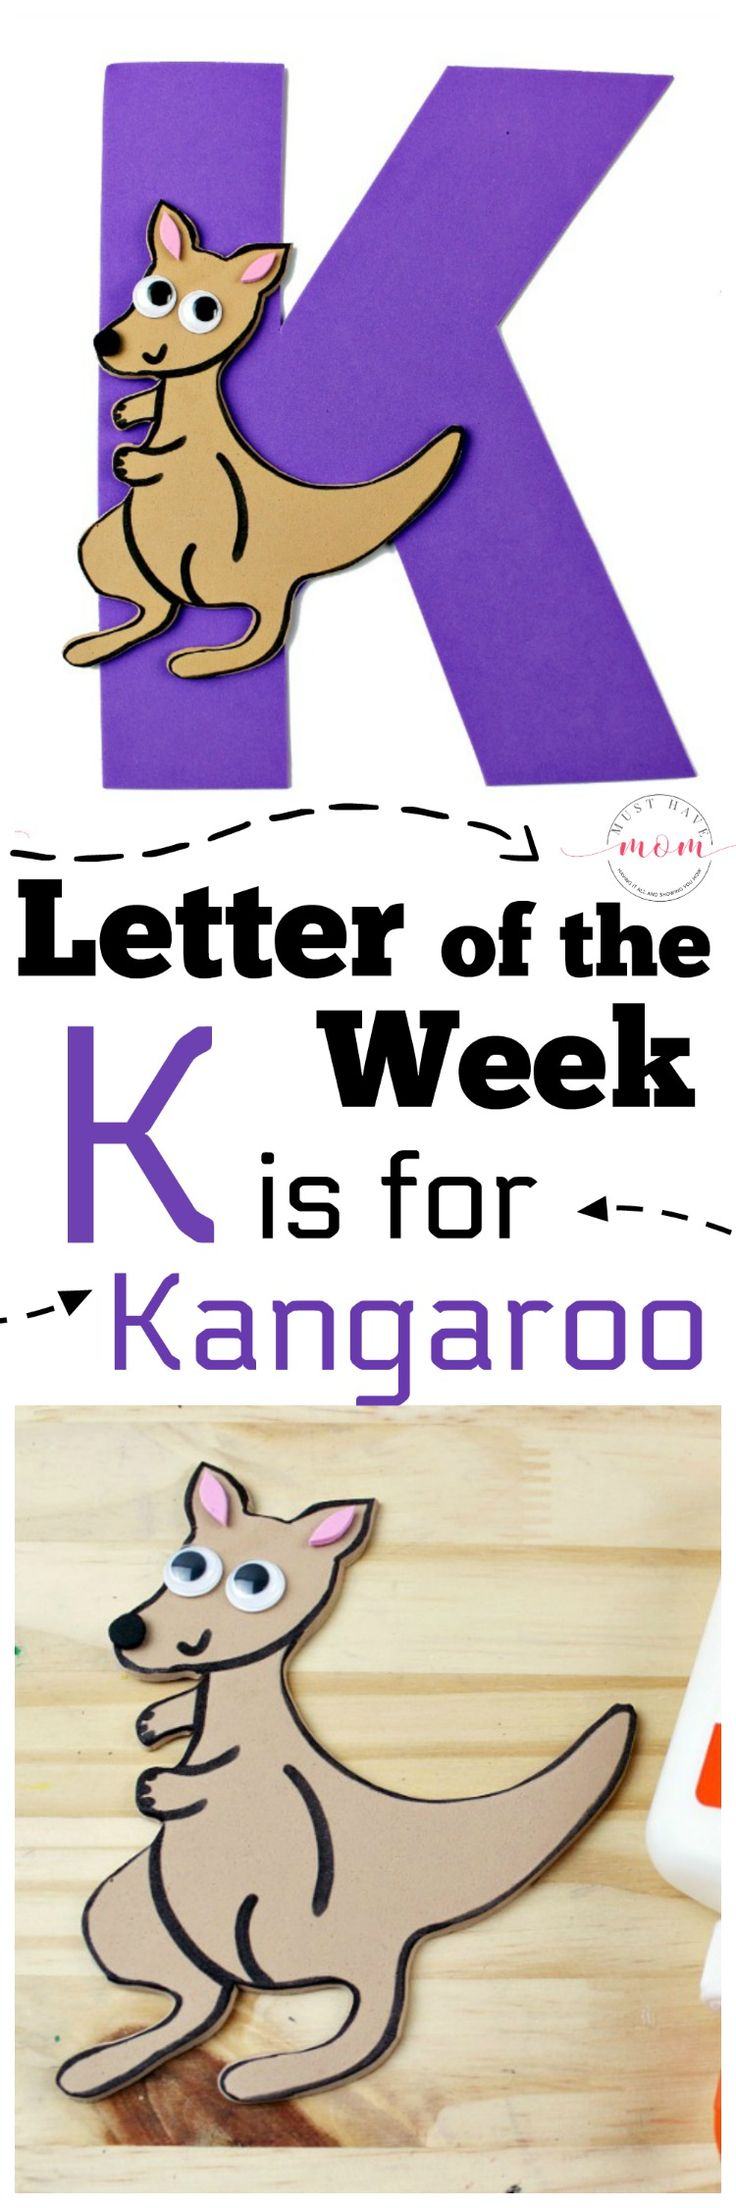 Weekly letter craft ideas! K is for kangaroo kids craft to learn letter recognition! via @musthavemom